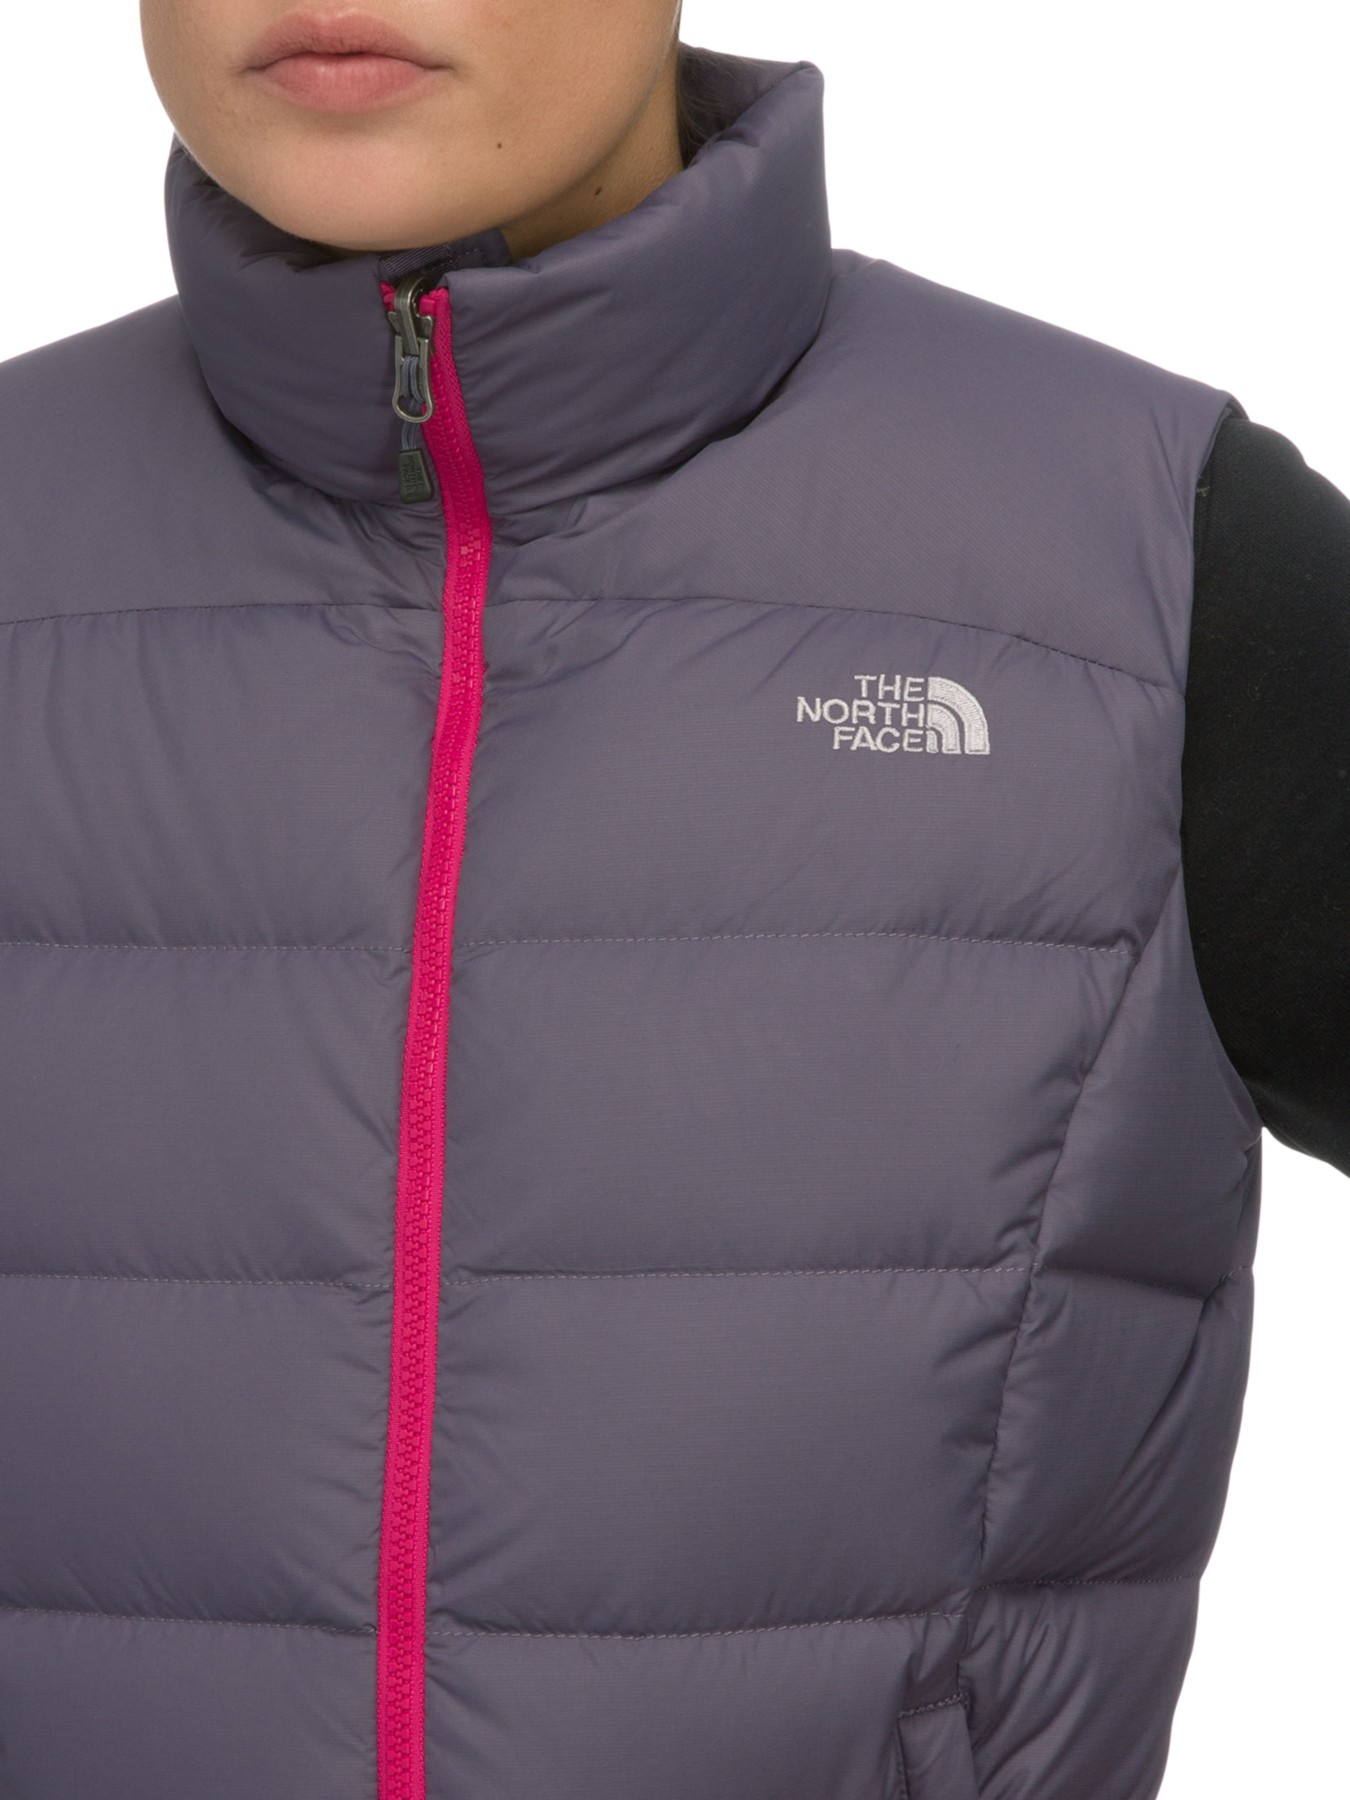 The North Face Womens Nuptse 2 Gilet in Gray - Lyst 225f4759b